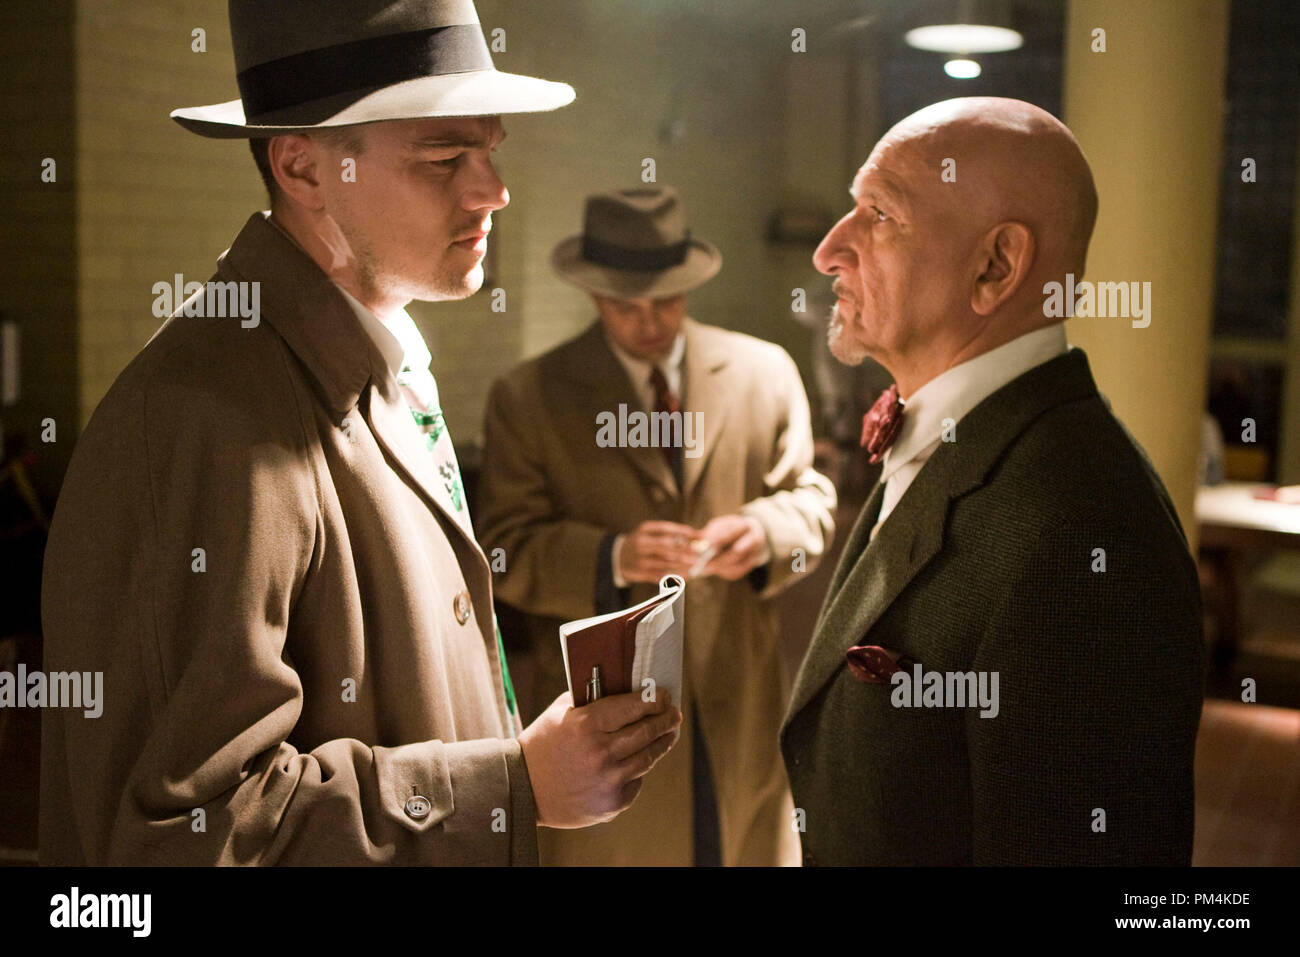 """(Left to right) Teddy Daniels (Leonardo DiCaprio) and Chuck Aule (Mark Ruffalo) discuss their suspicions about the mysterious disappearance on an island prison for the criminally insane with Dr. Cawley (Ben Kingsley) in the thriller """"Shutter Island."""" - Stock Image"""